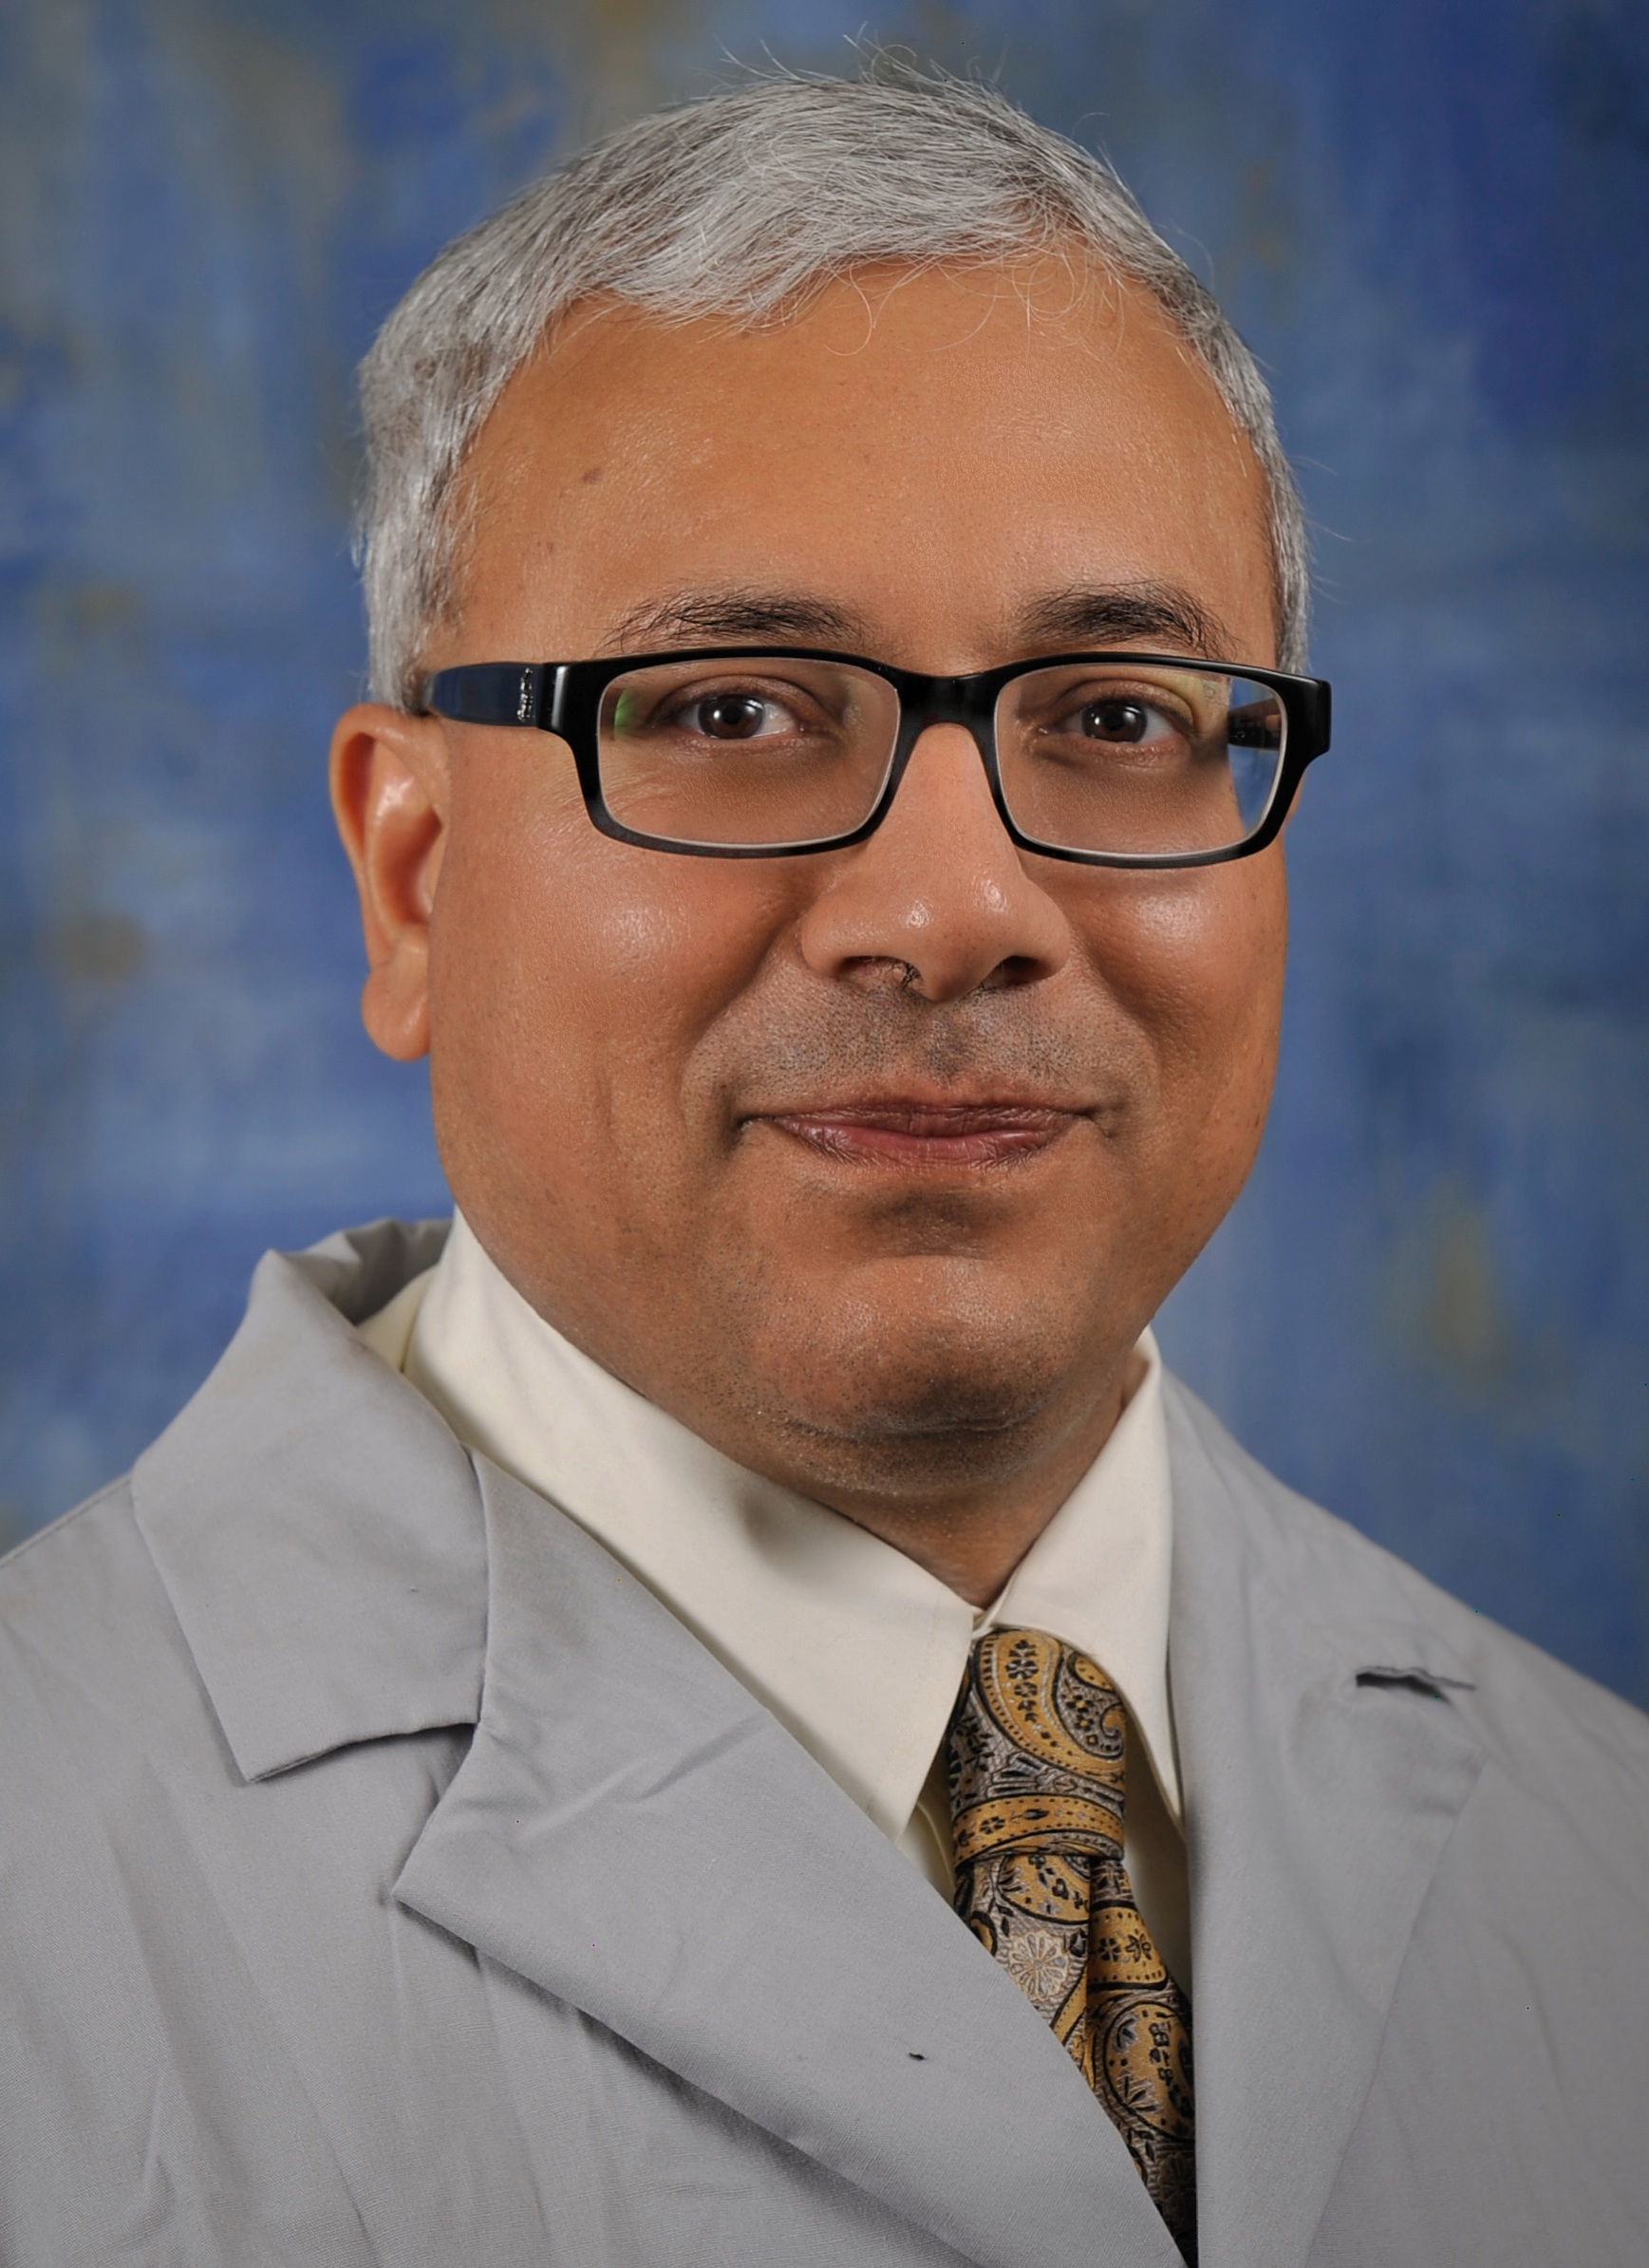 Ramsis F. Ghaly, MD